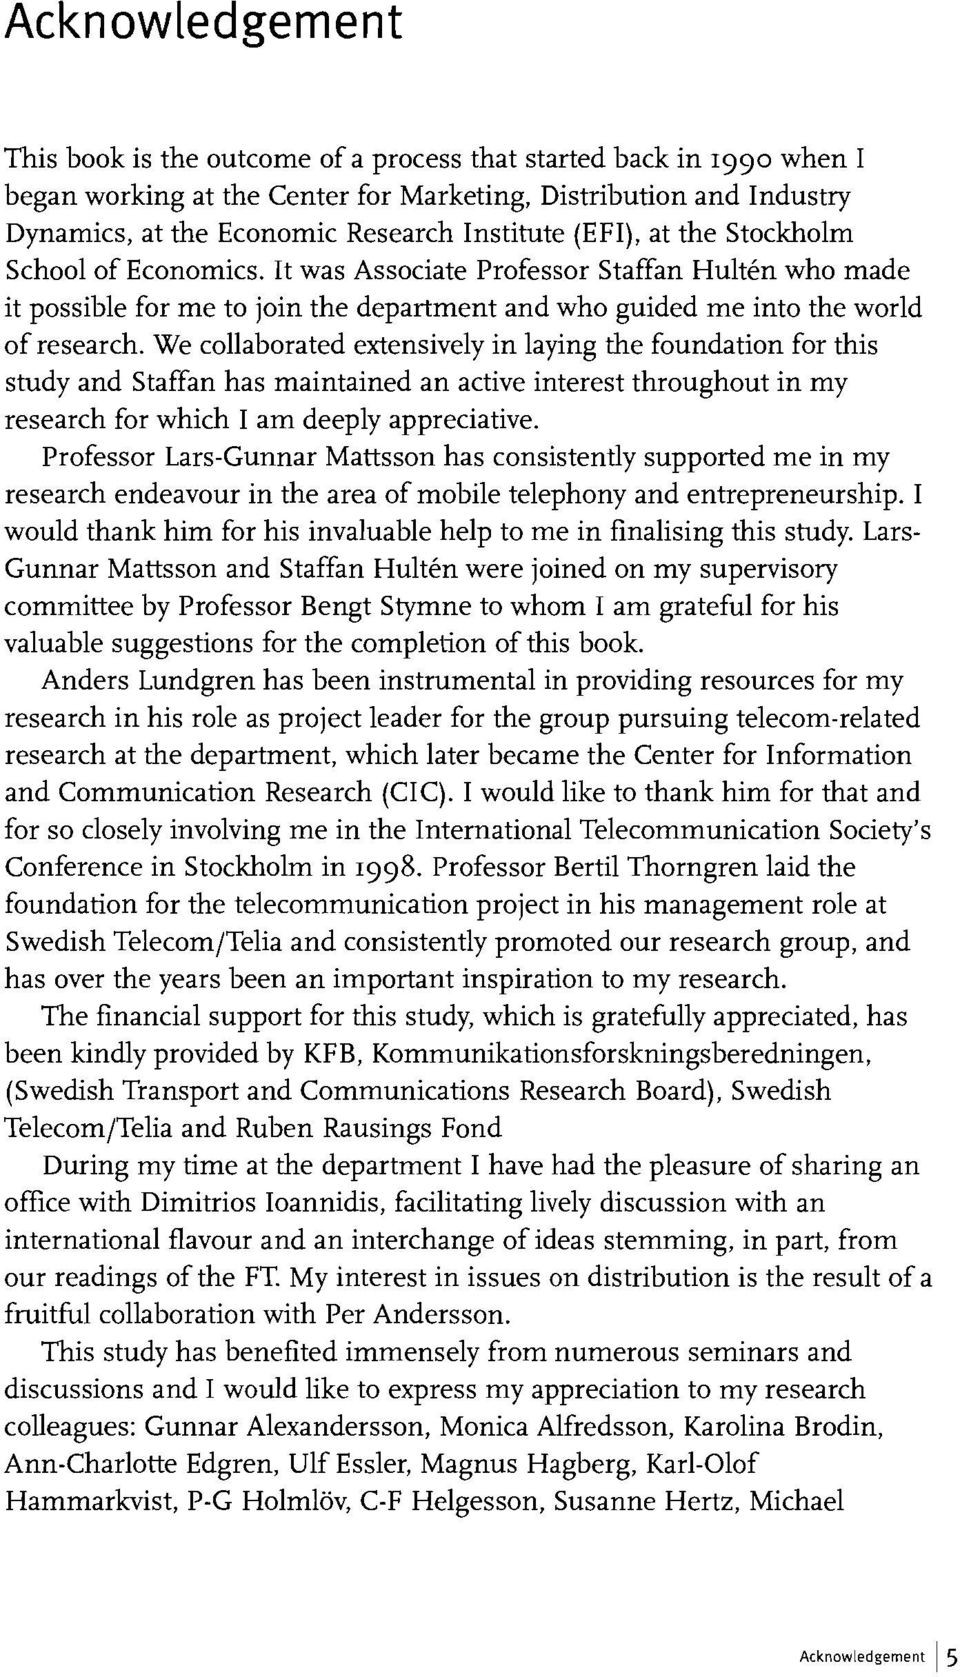 We collaborated extensively in laying the foundation for this study and Staffan has maintained an active interest throughout in my research for which I am deeply appreciative.